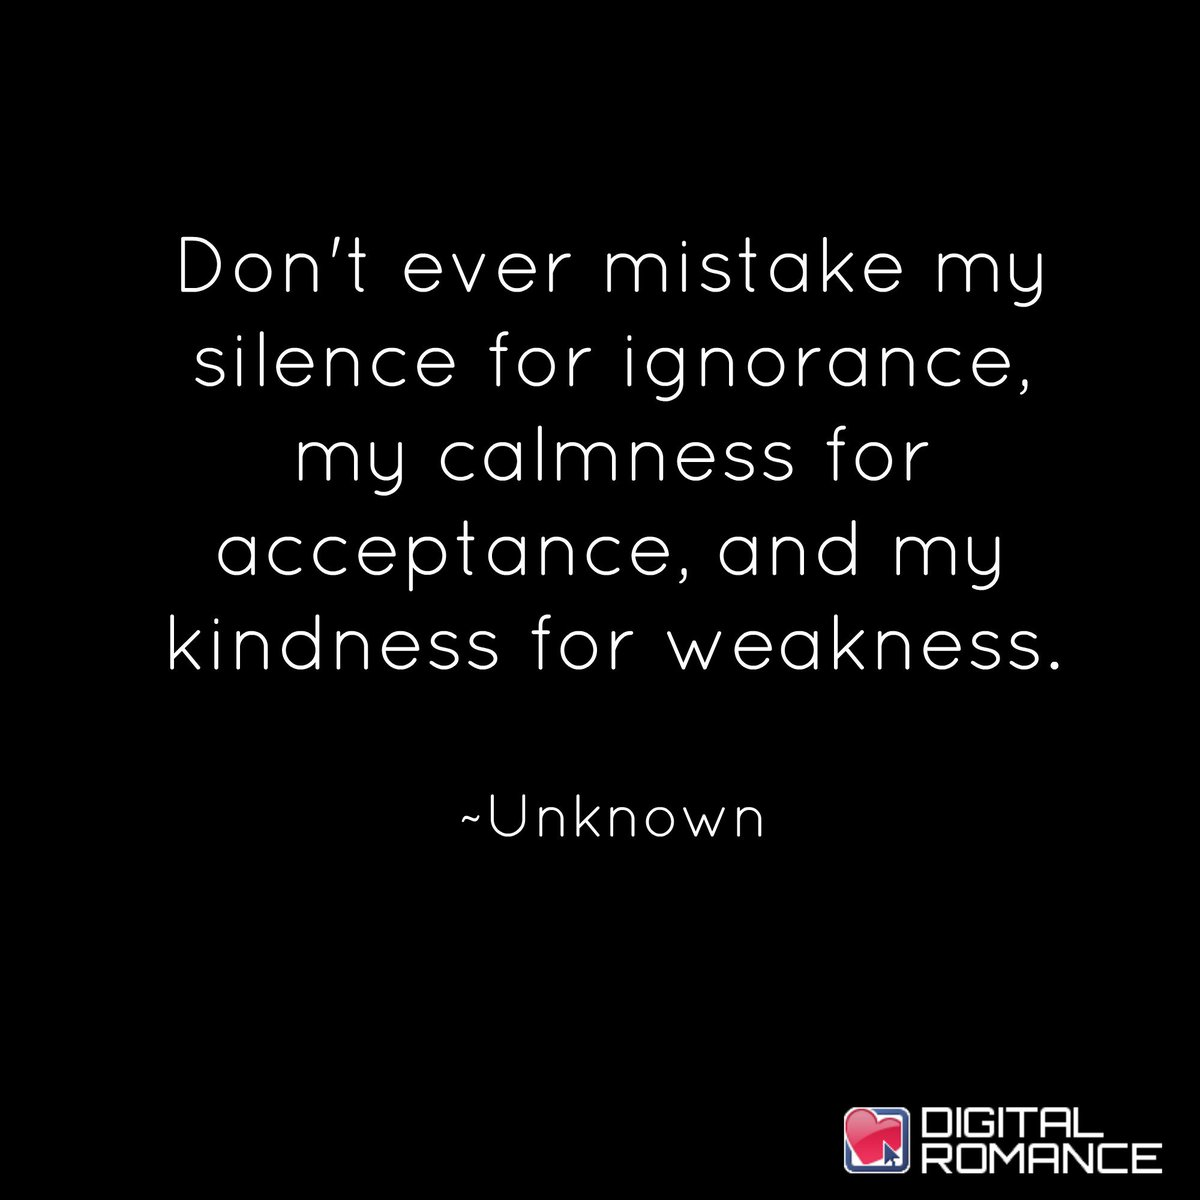 Digital Romance Inc On Twitter Dont Ever Mistake My Silence For